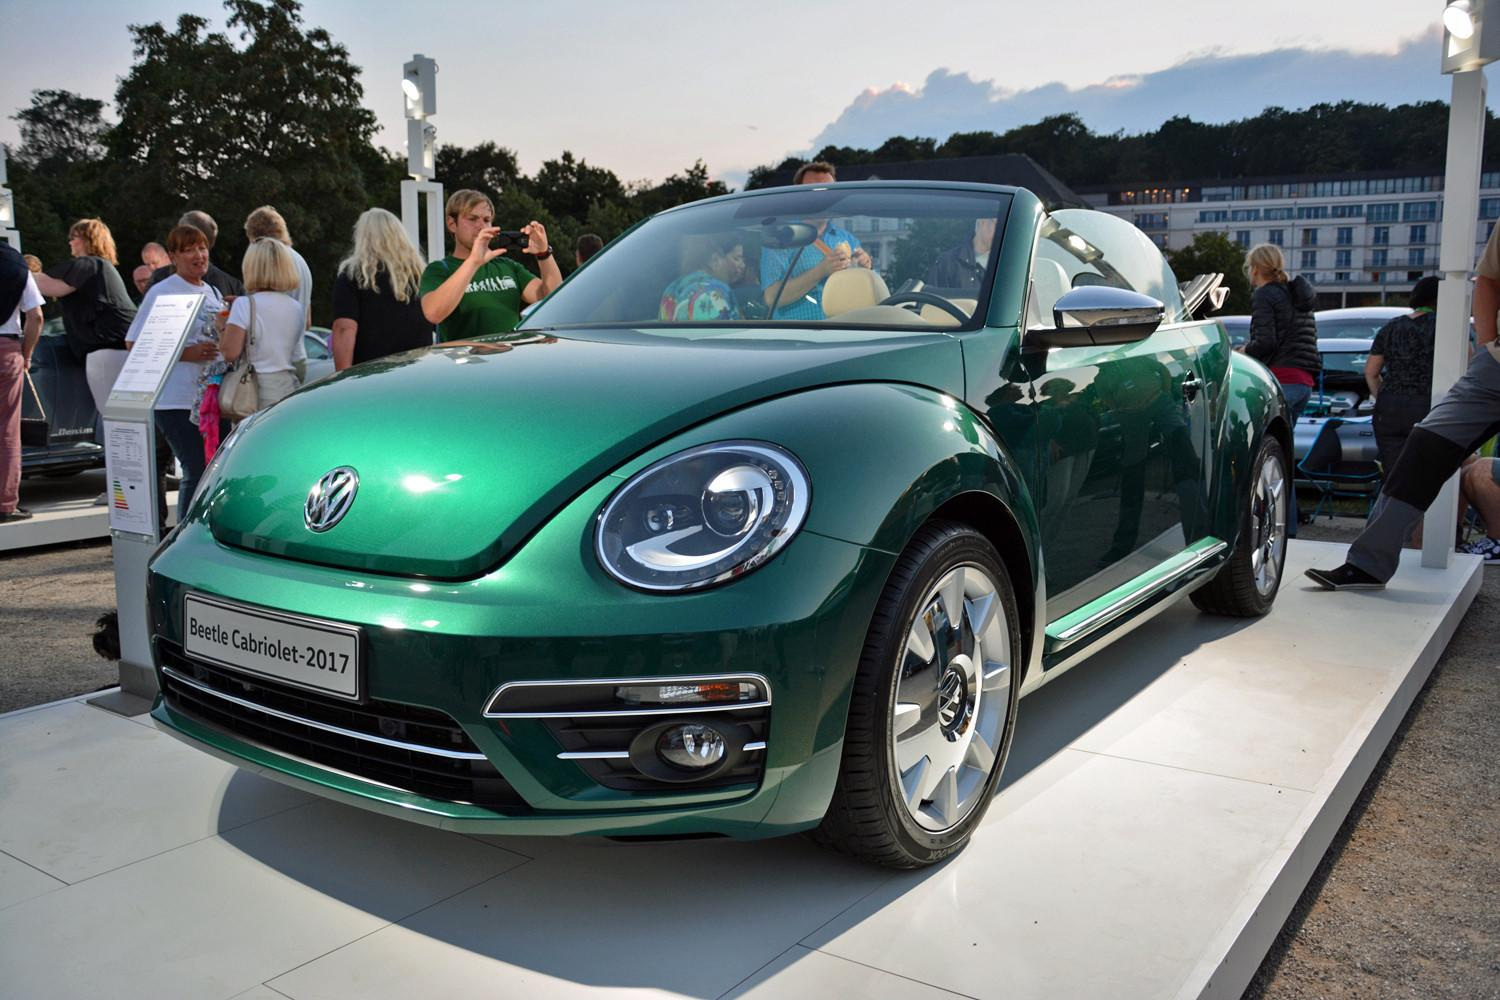 Volkswagen's retro Beetle ups its styling game for 2017